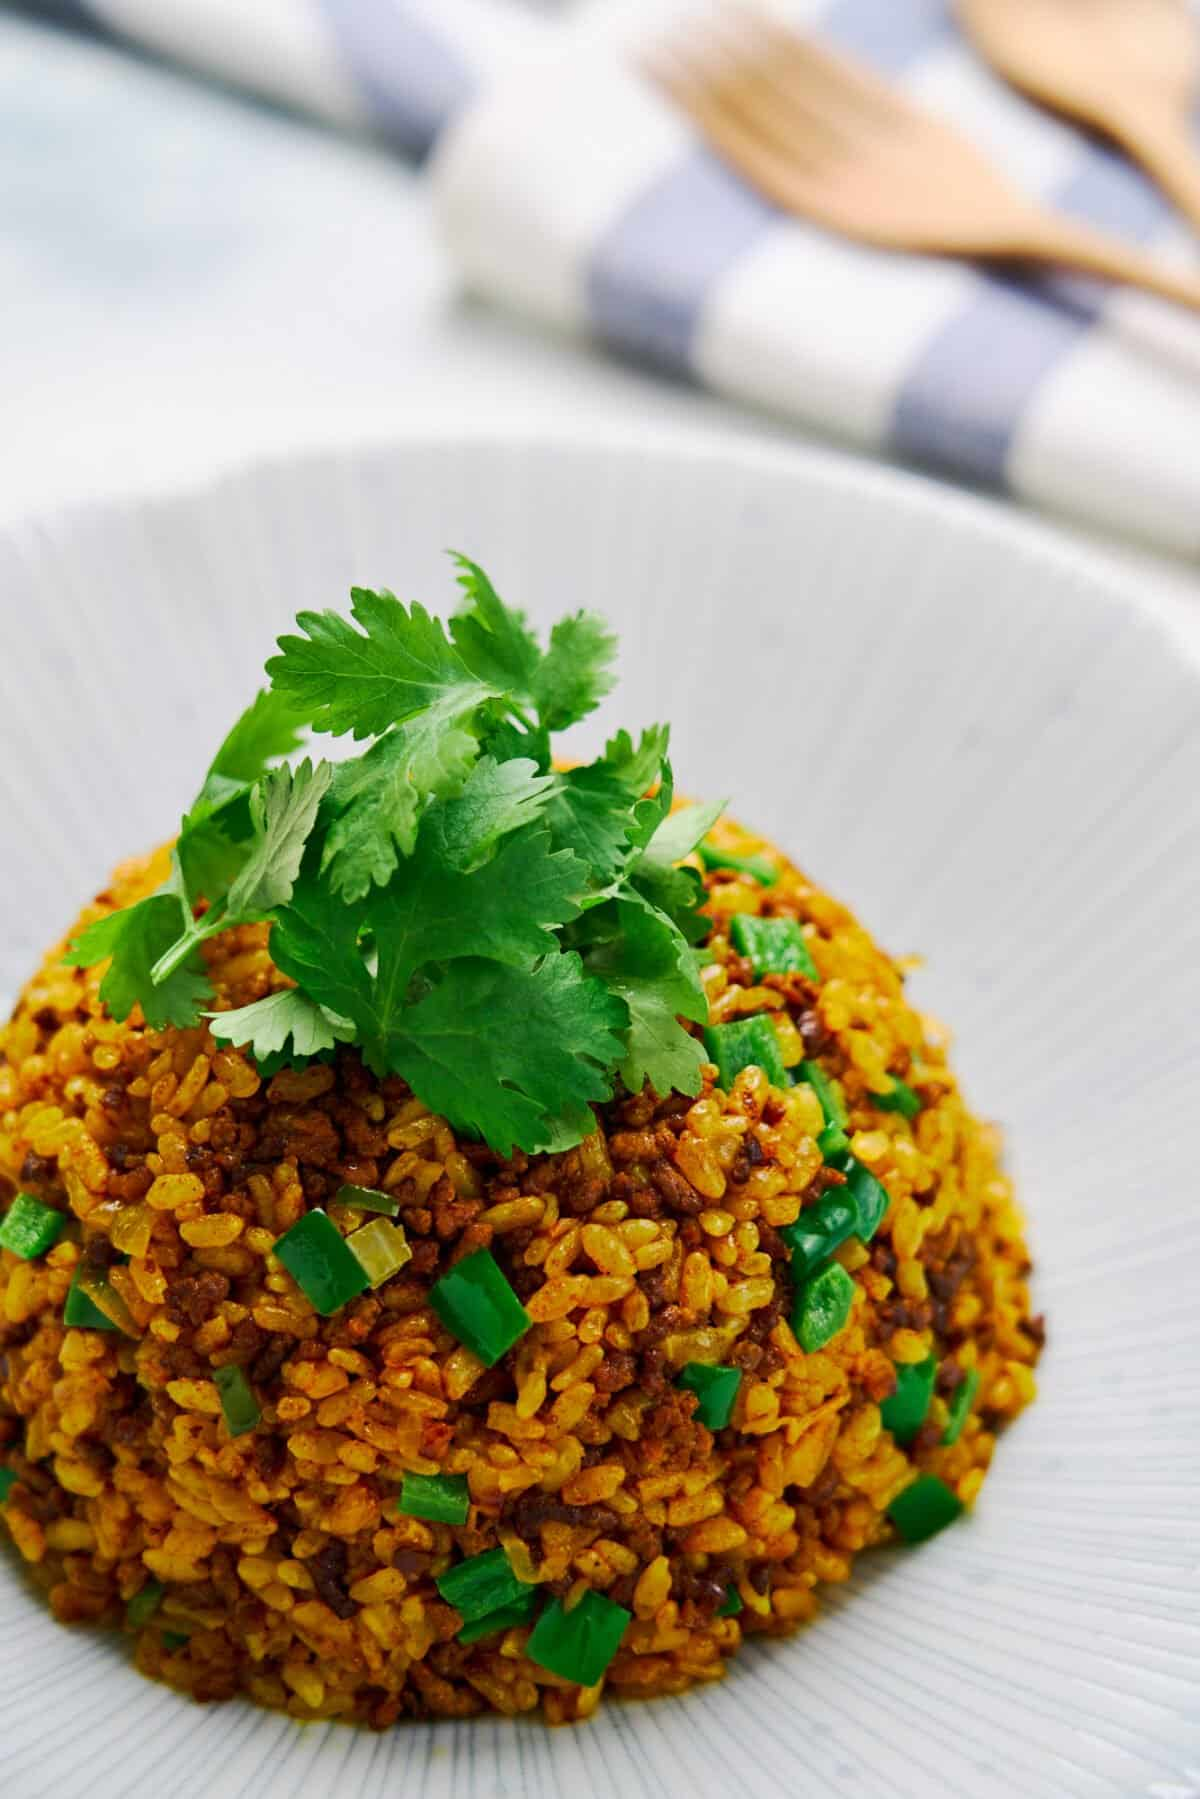 With ground beef and caramelized onions, this easy curry fried rice tastes like a big bubbling pot of Japanese Curry.